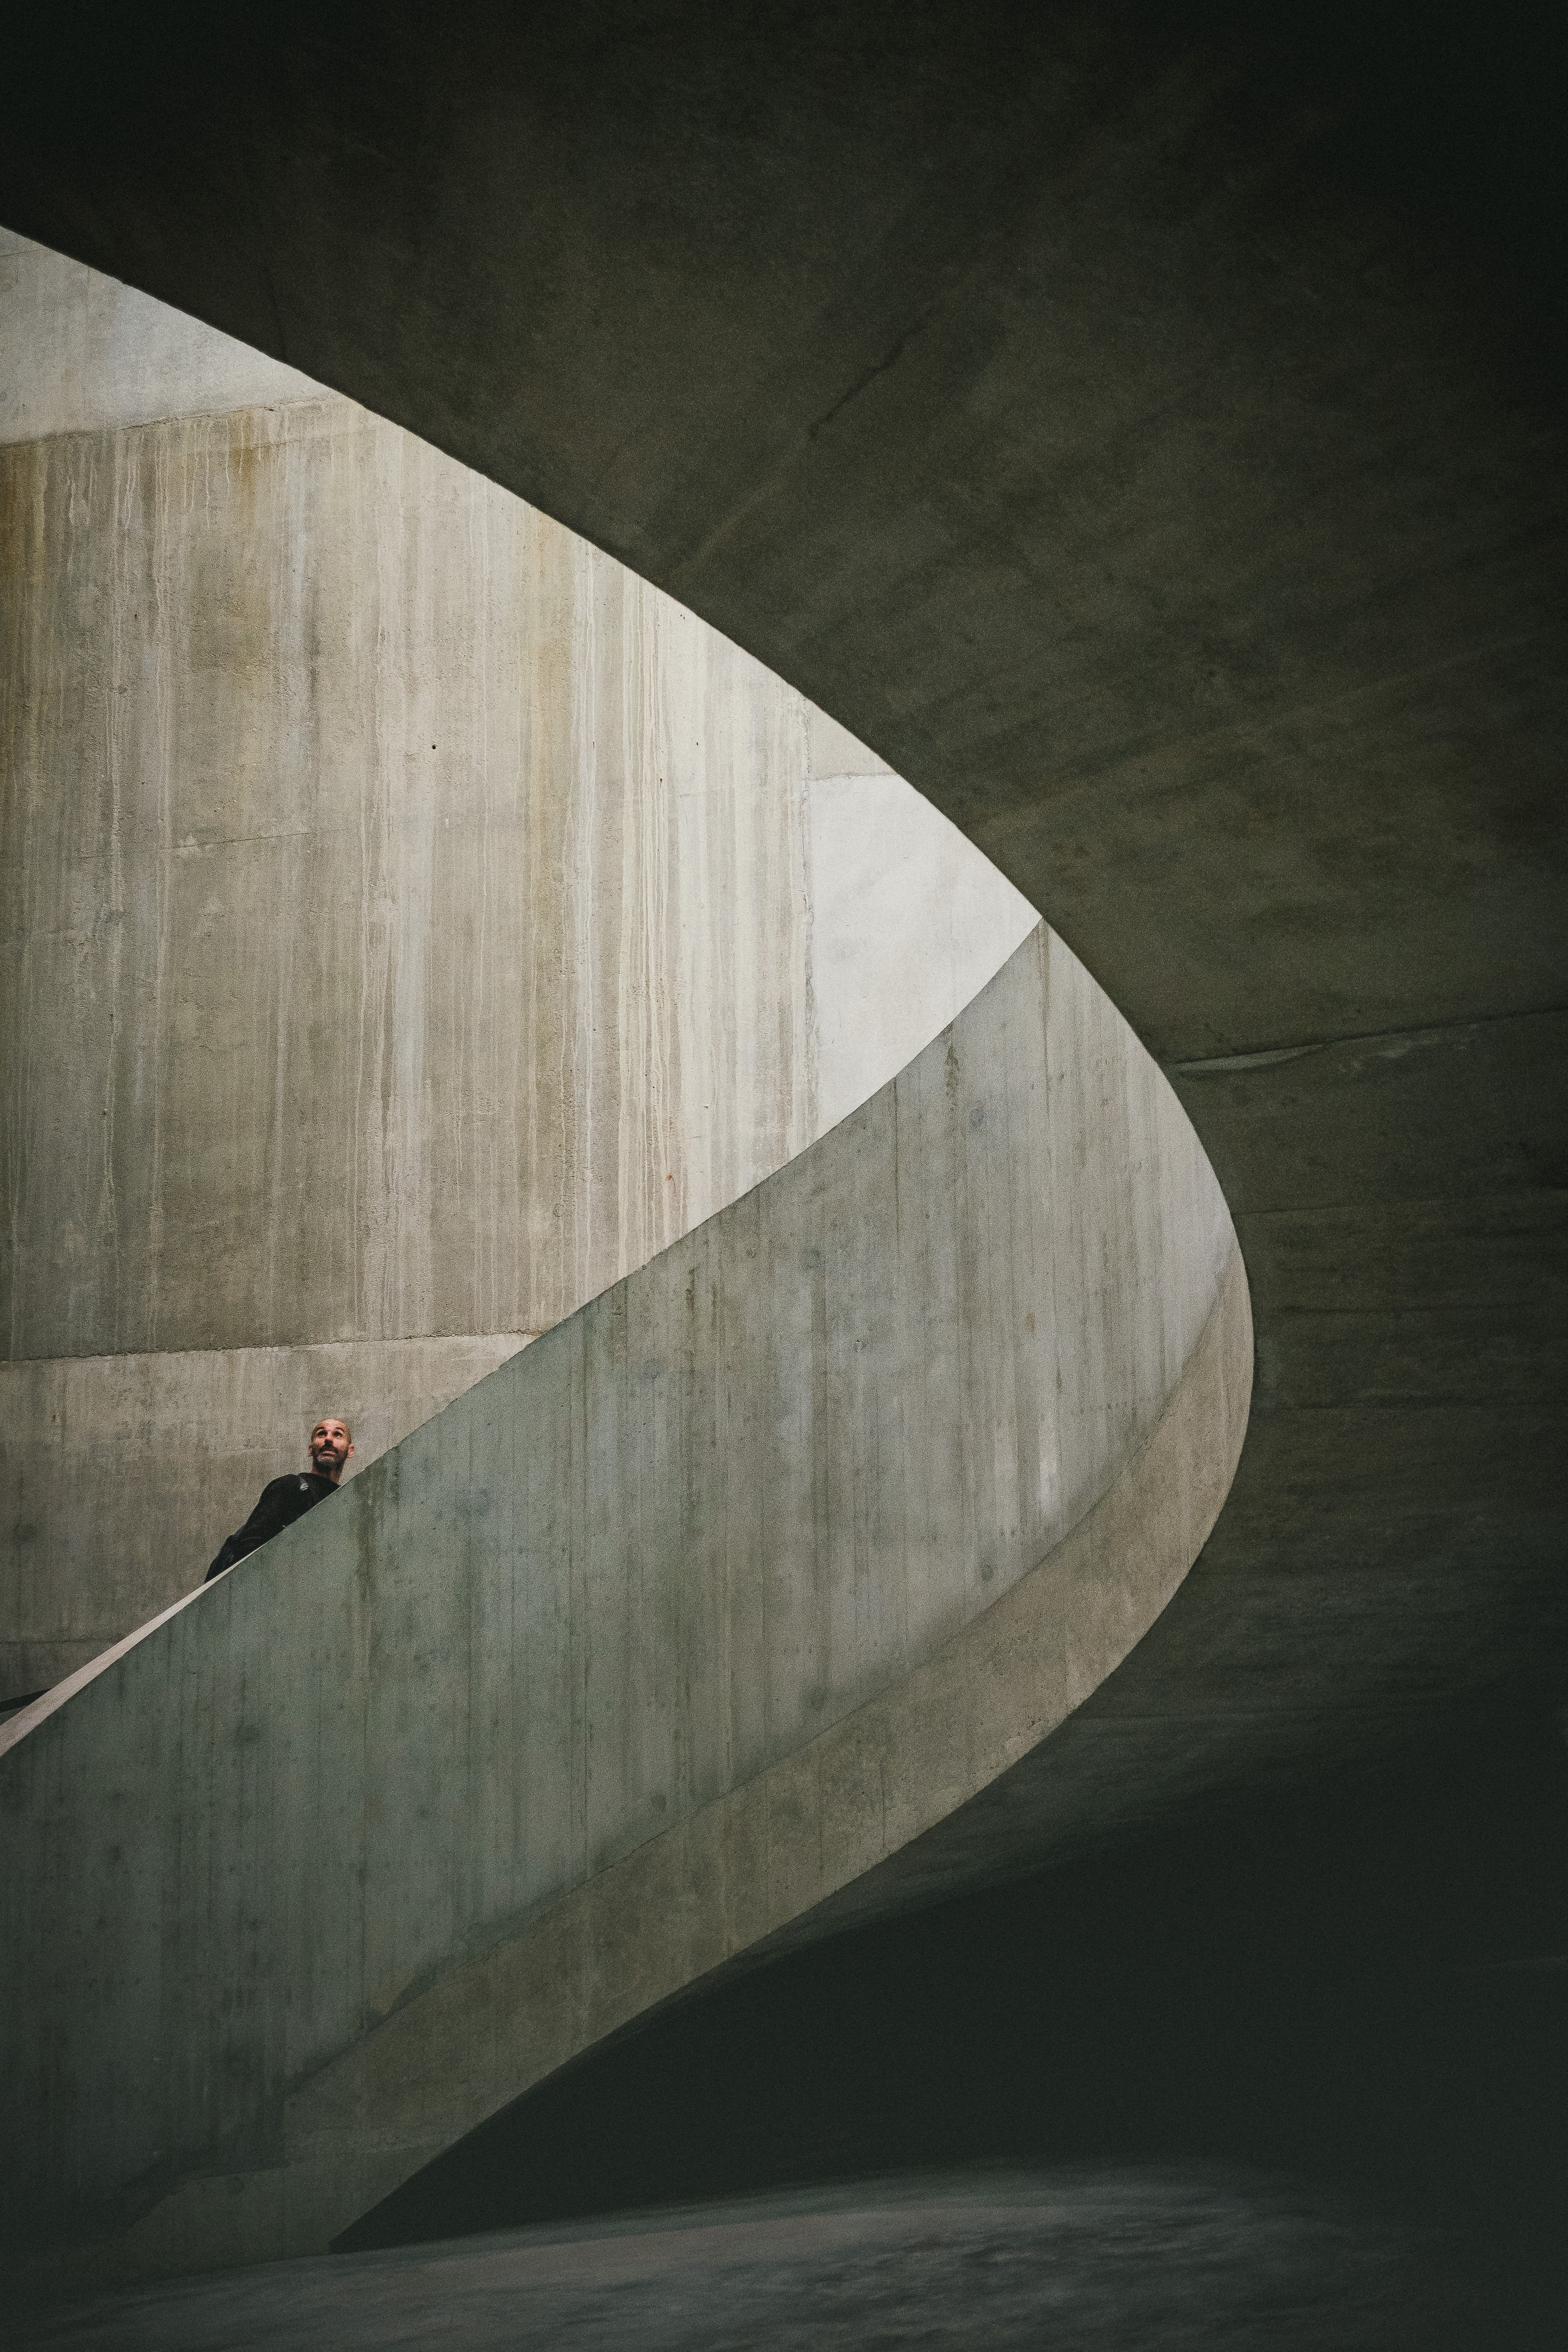 photography of man climbing a spiral stairs